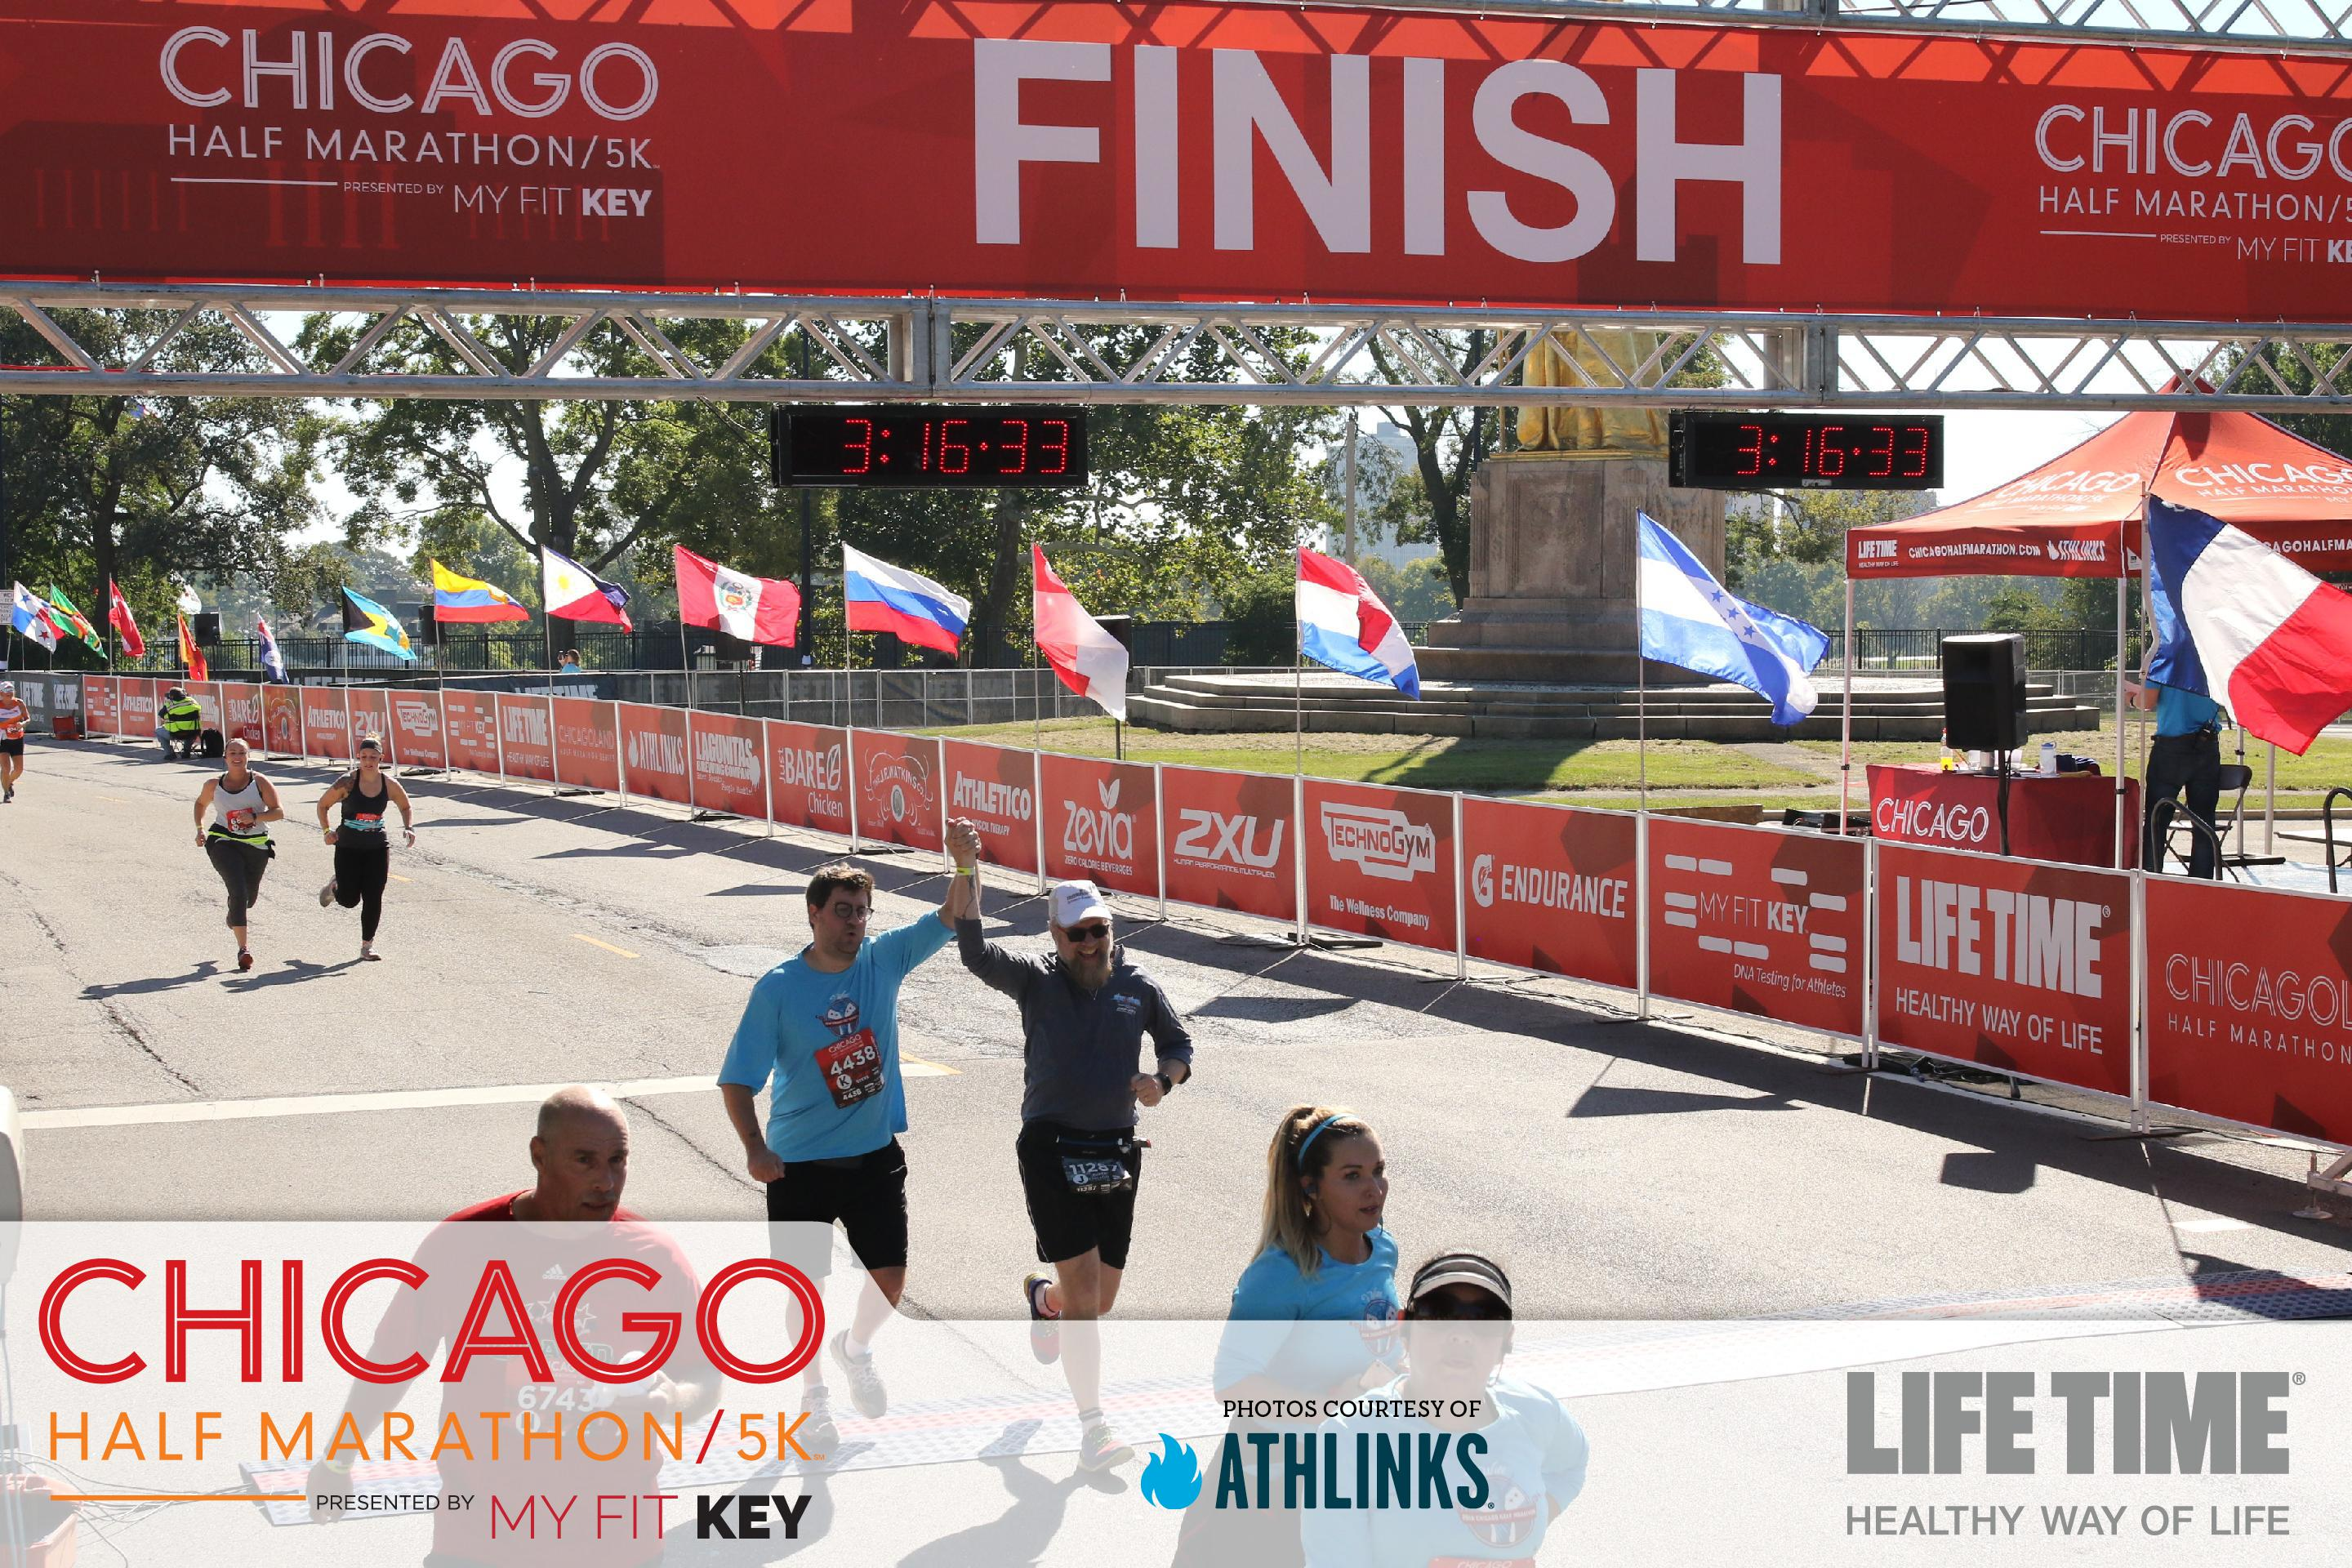 Steve and Fuzzy finishing the Chicago Half-Marathon